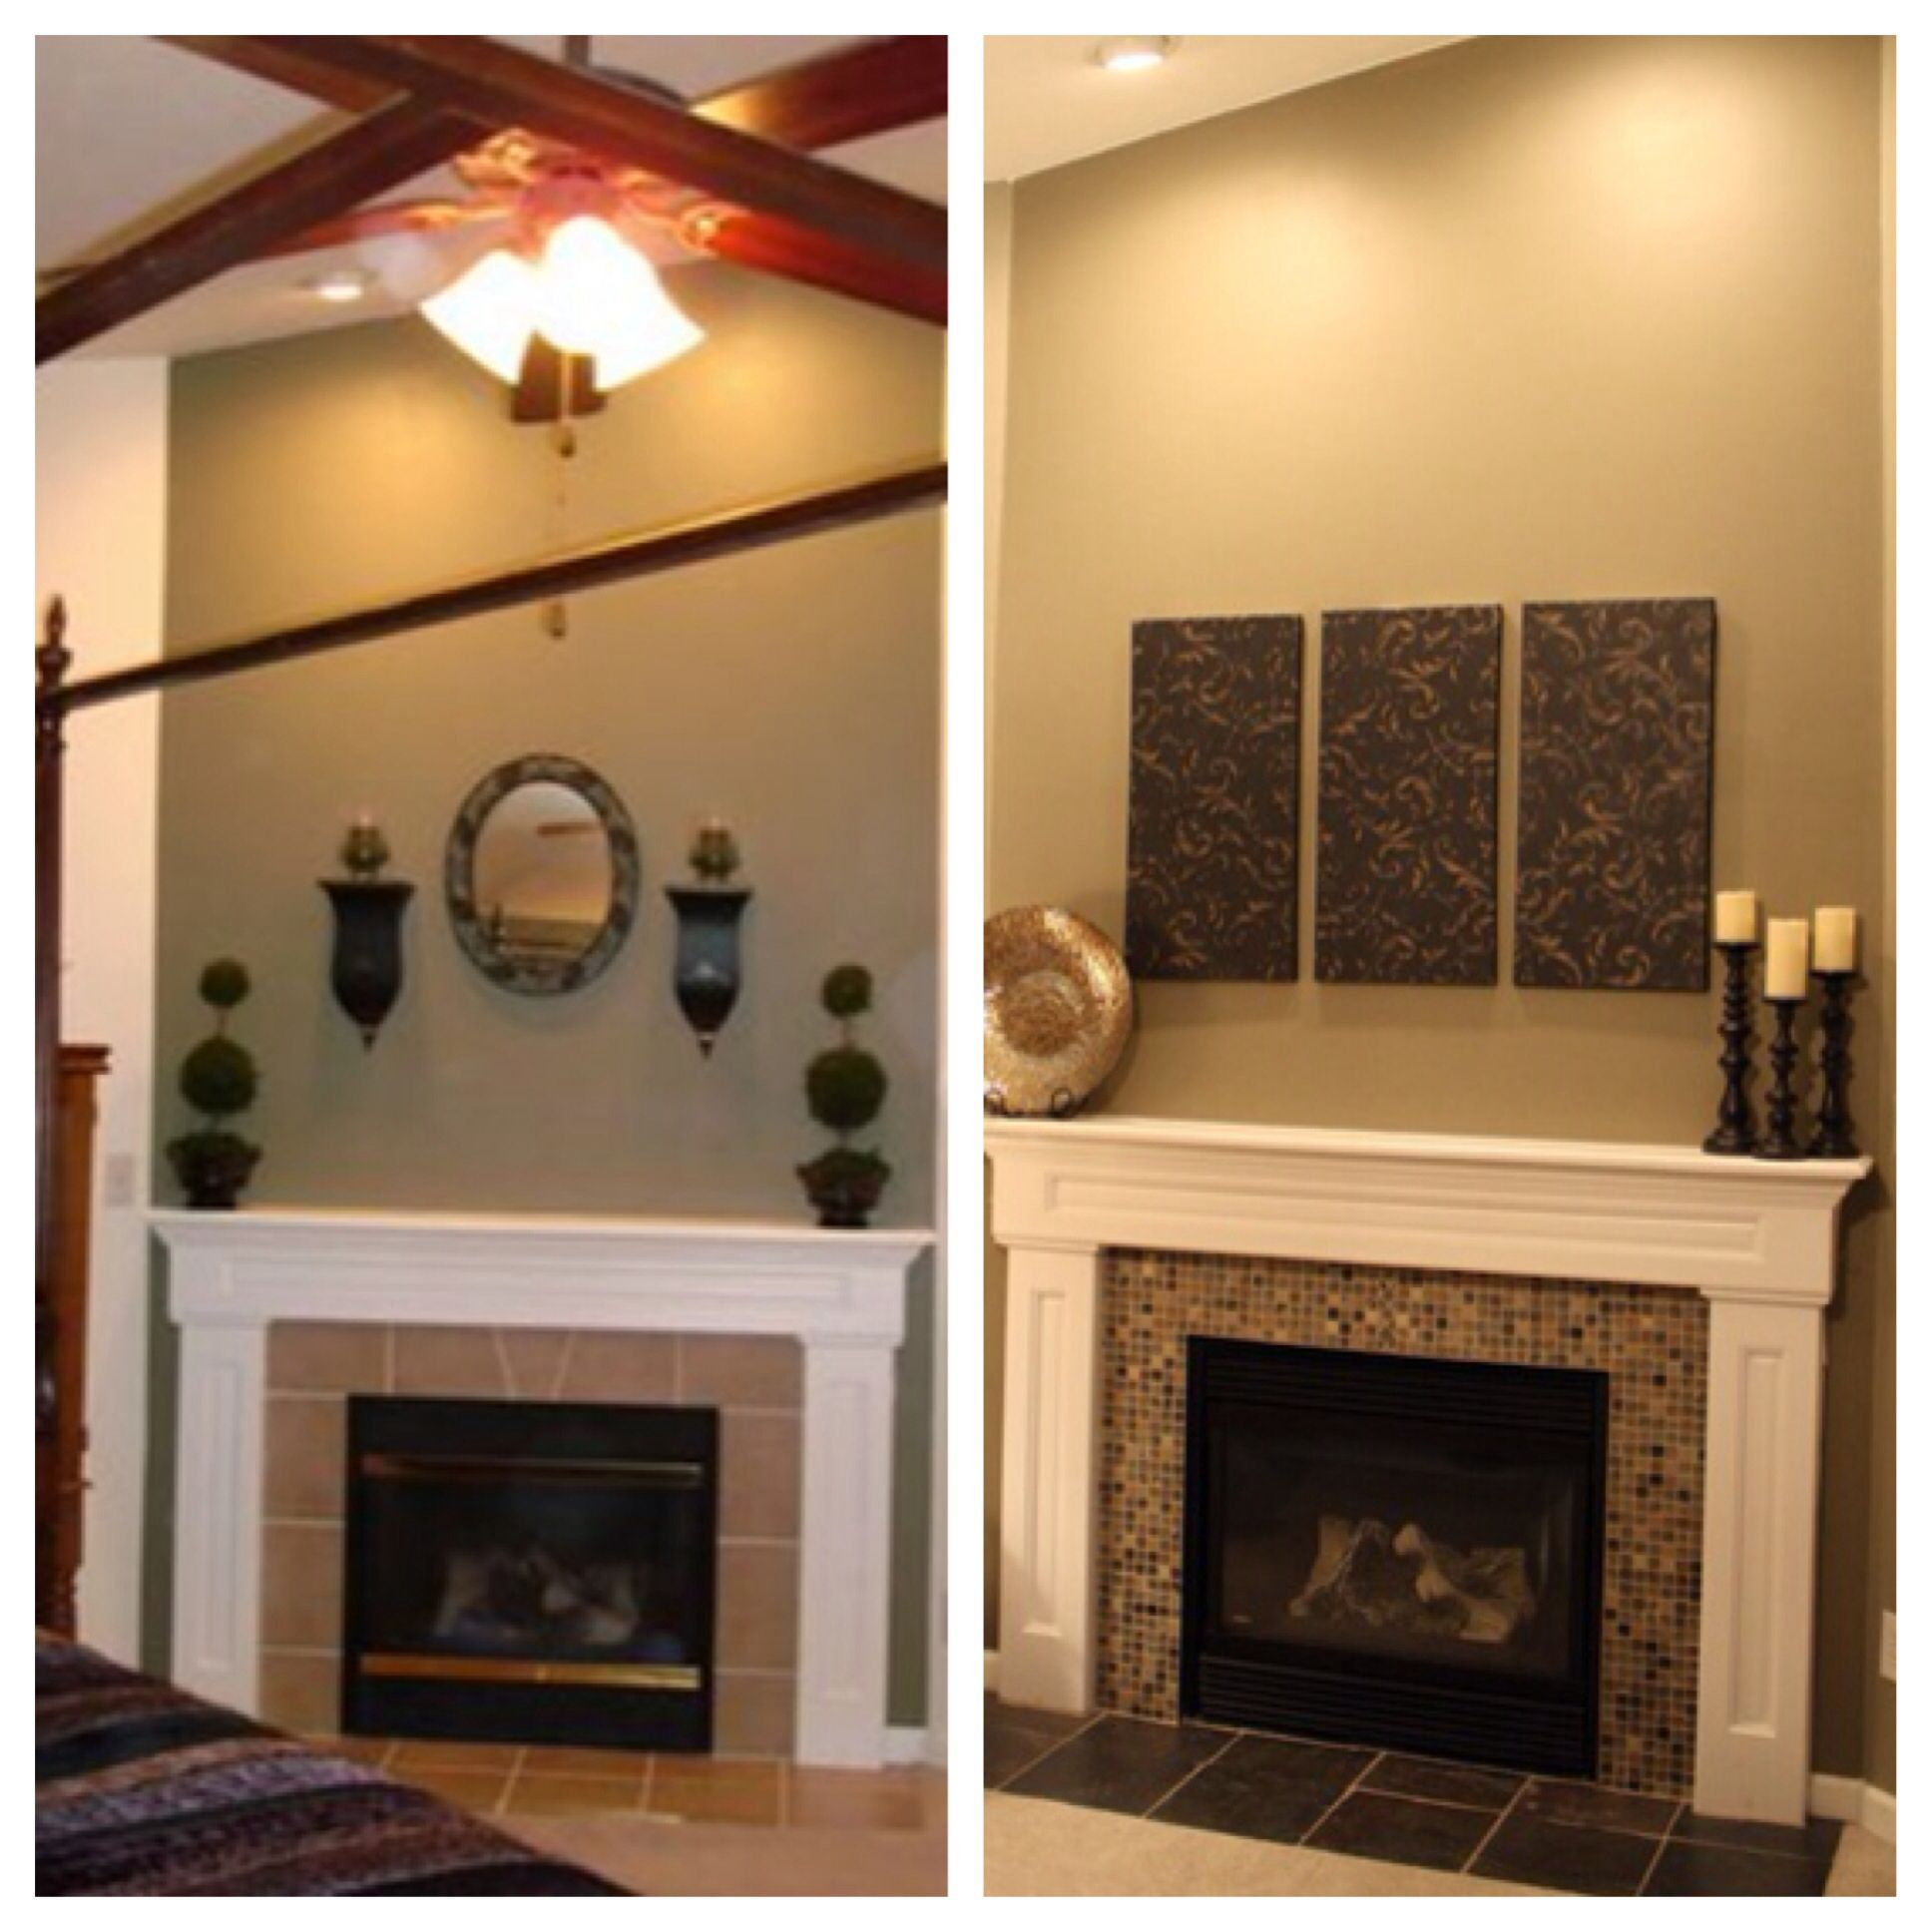 A Before And After Fireplace Redo With Mosaic Tile